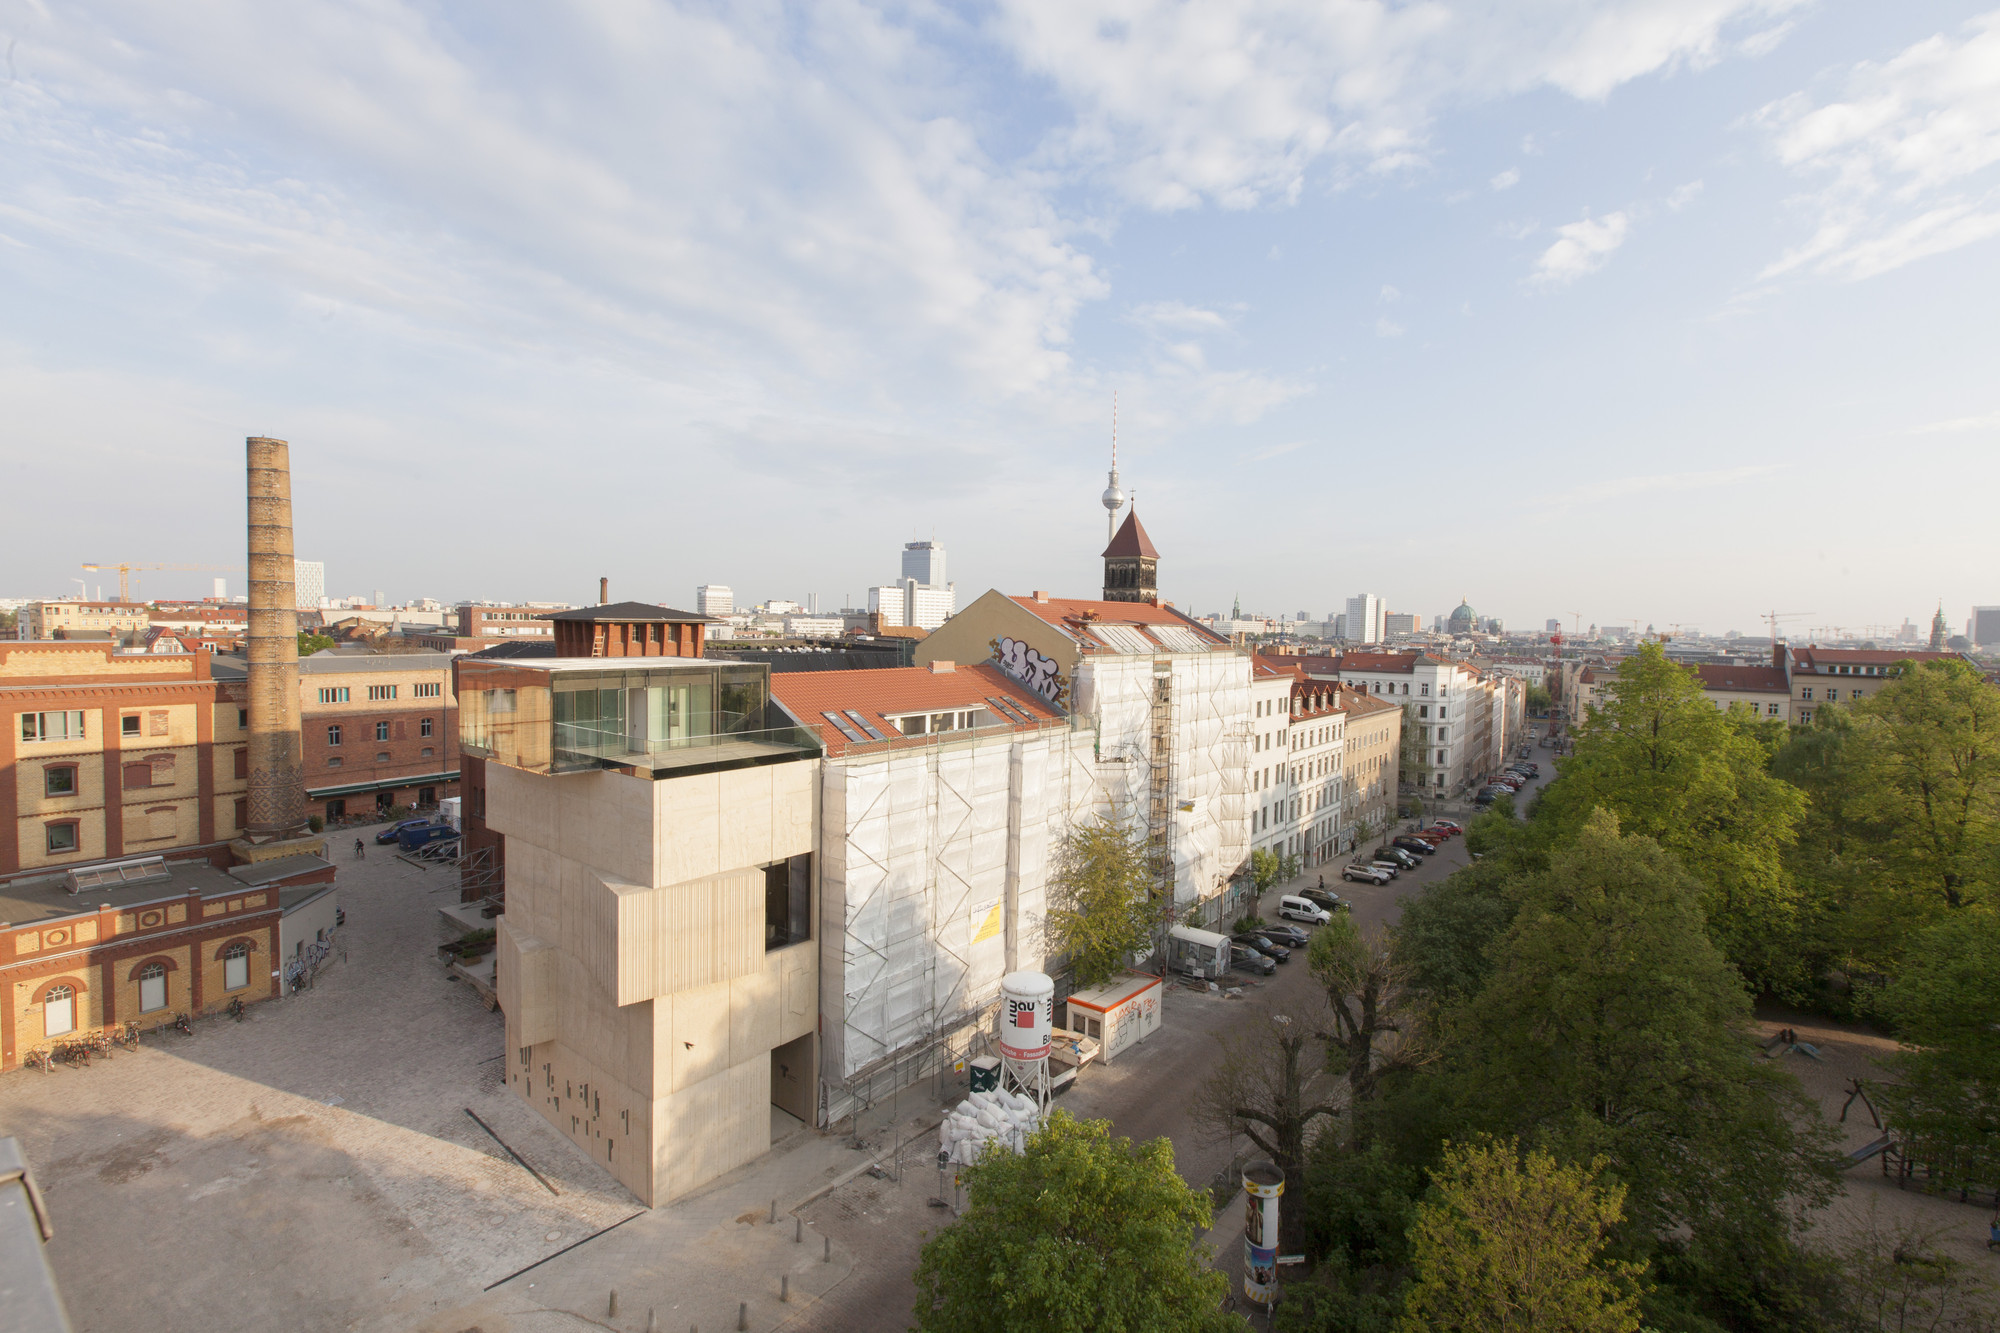 Museum For Architectural Drawing Berlin gallery of tchoban foundation - museum for architectural drawing